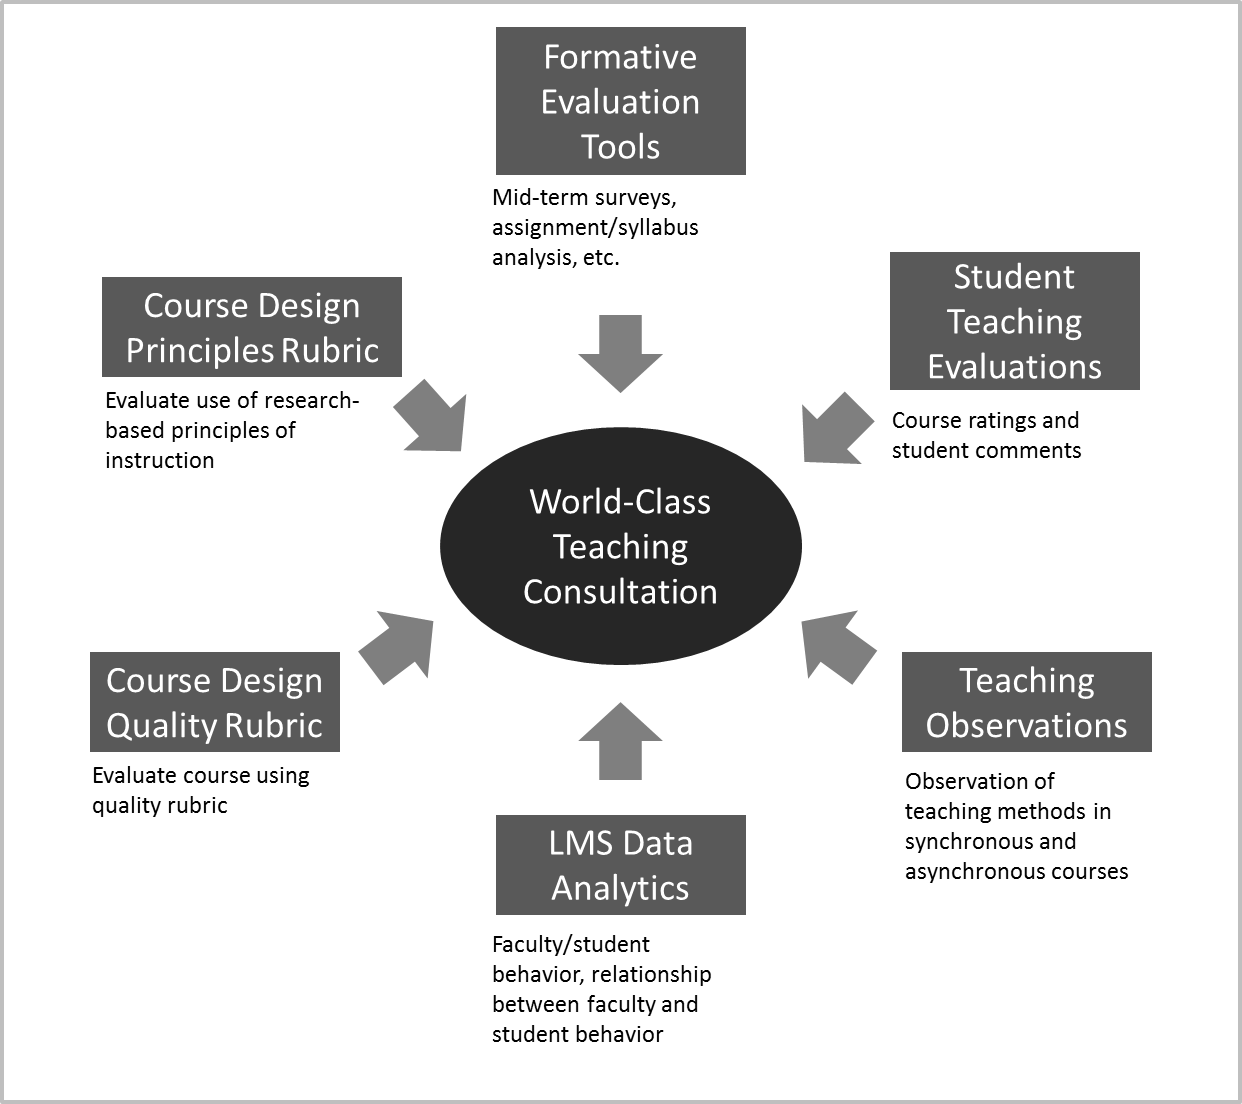 reflections on learning success the ideal in evaluating and the ideal data sources for effective teaching evaluation particularly in higher education